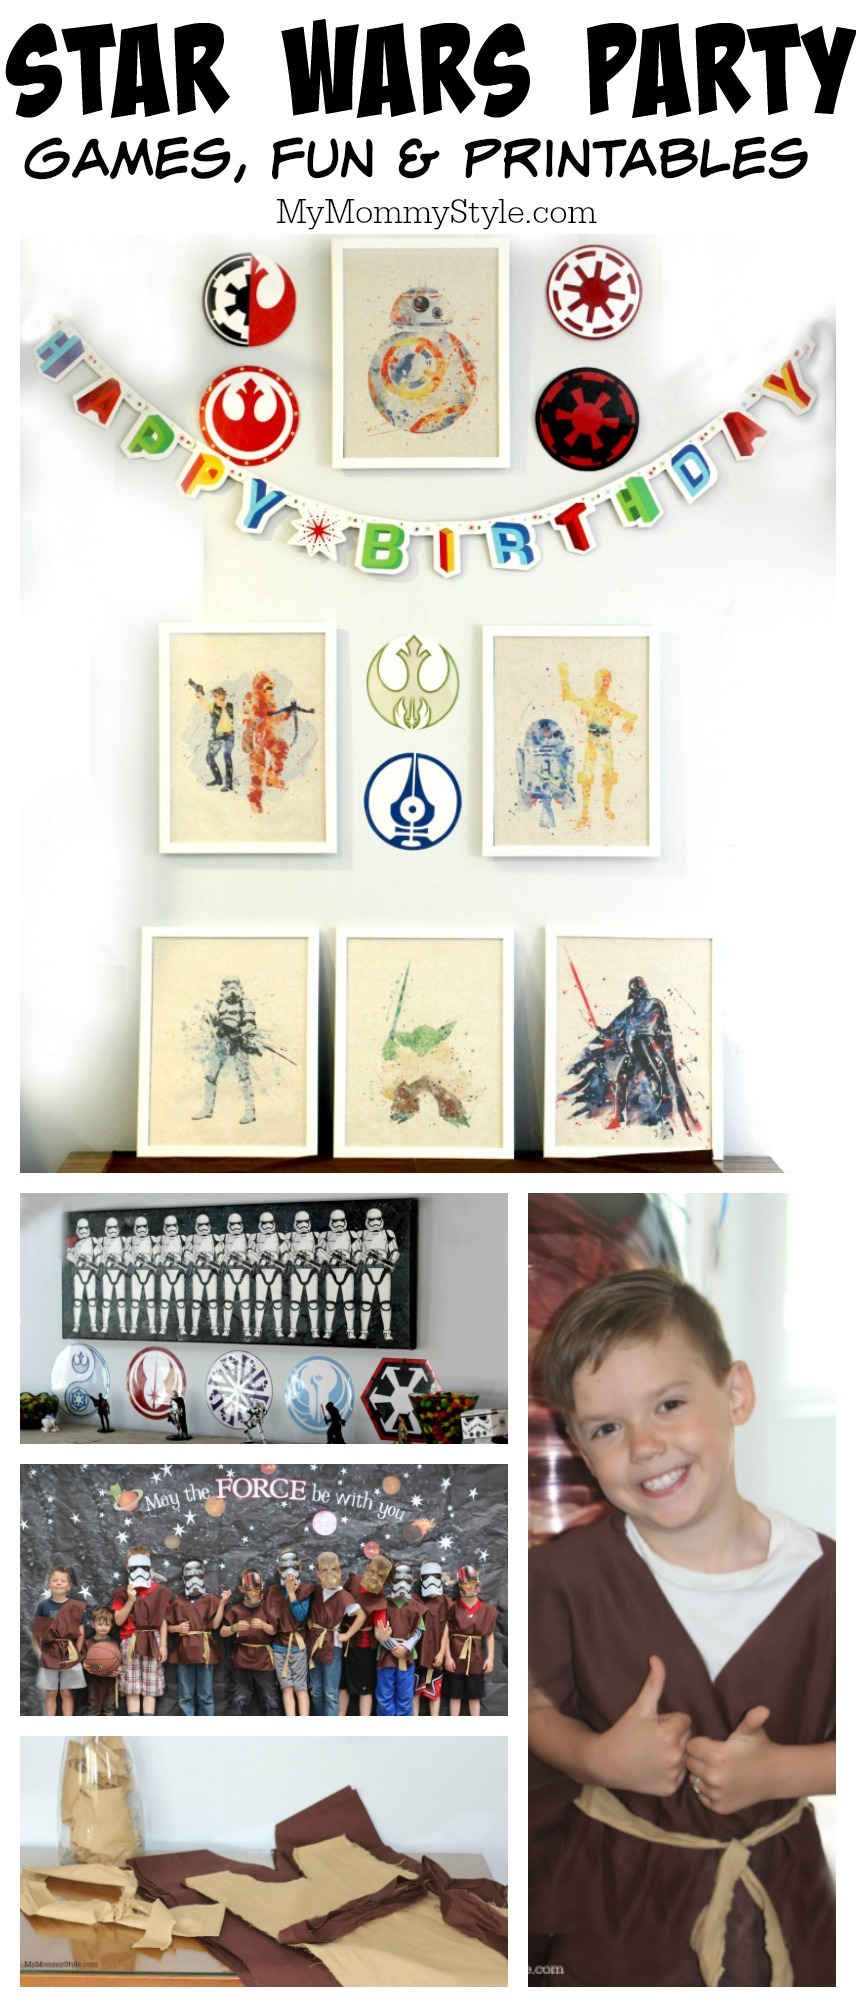 17 Star Wars Birthday Party Ideas - My Mommy Style